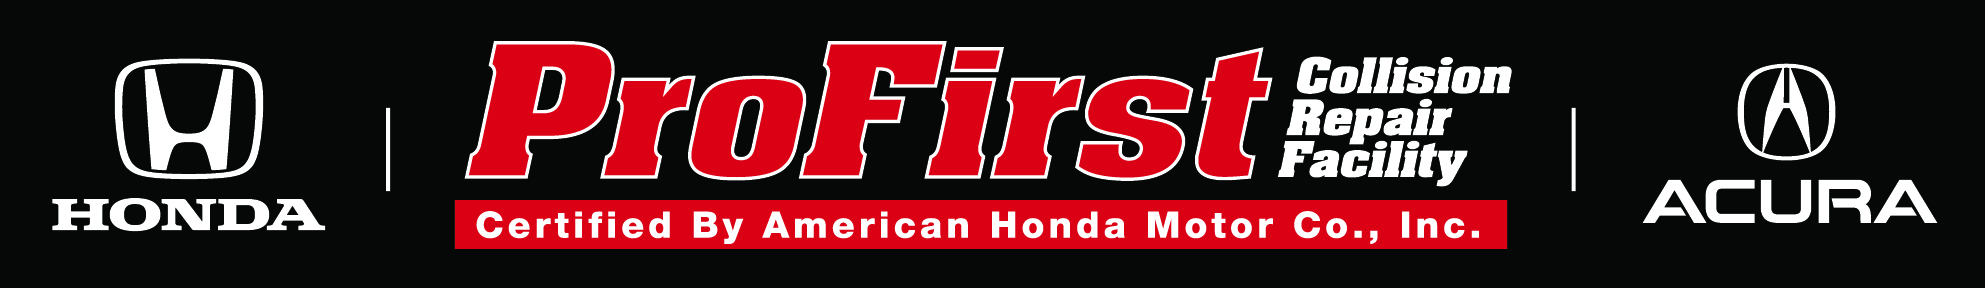 ... Facility Cleanliness, Honda And Acura Knowledge, Training, And Other  Areas Determined Important For Customer Satisfaction And Quality Collision  Service.